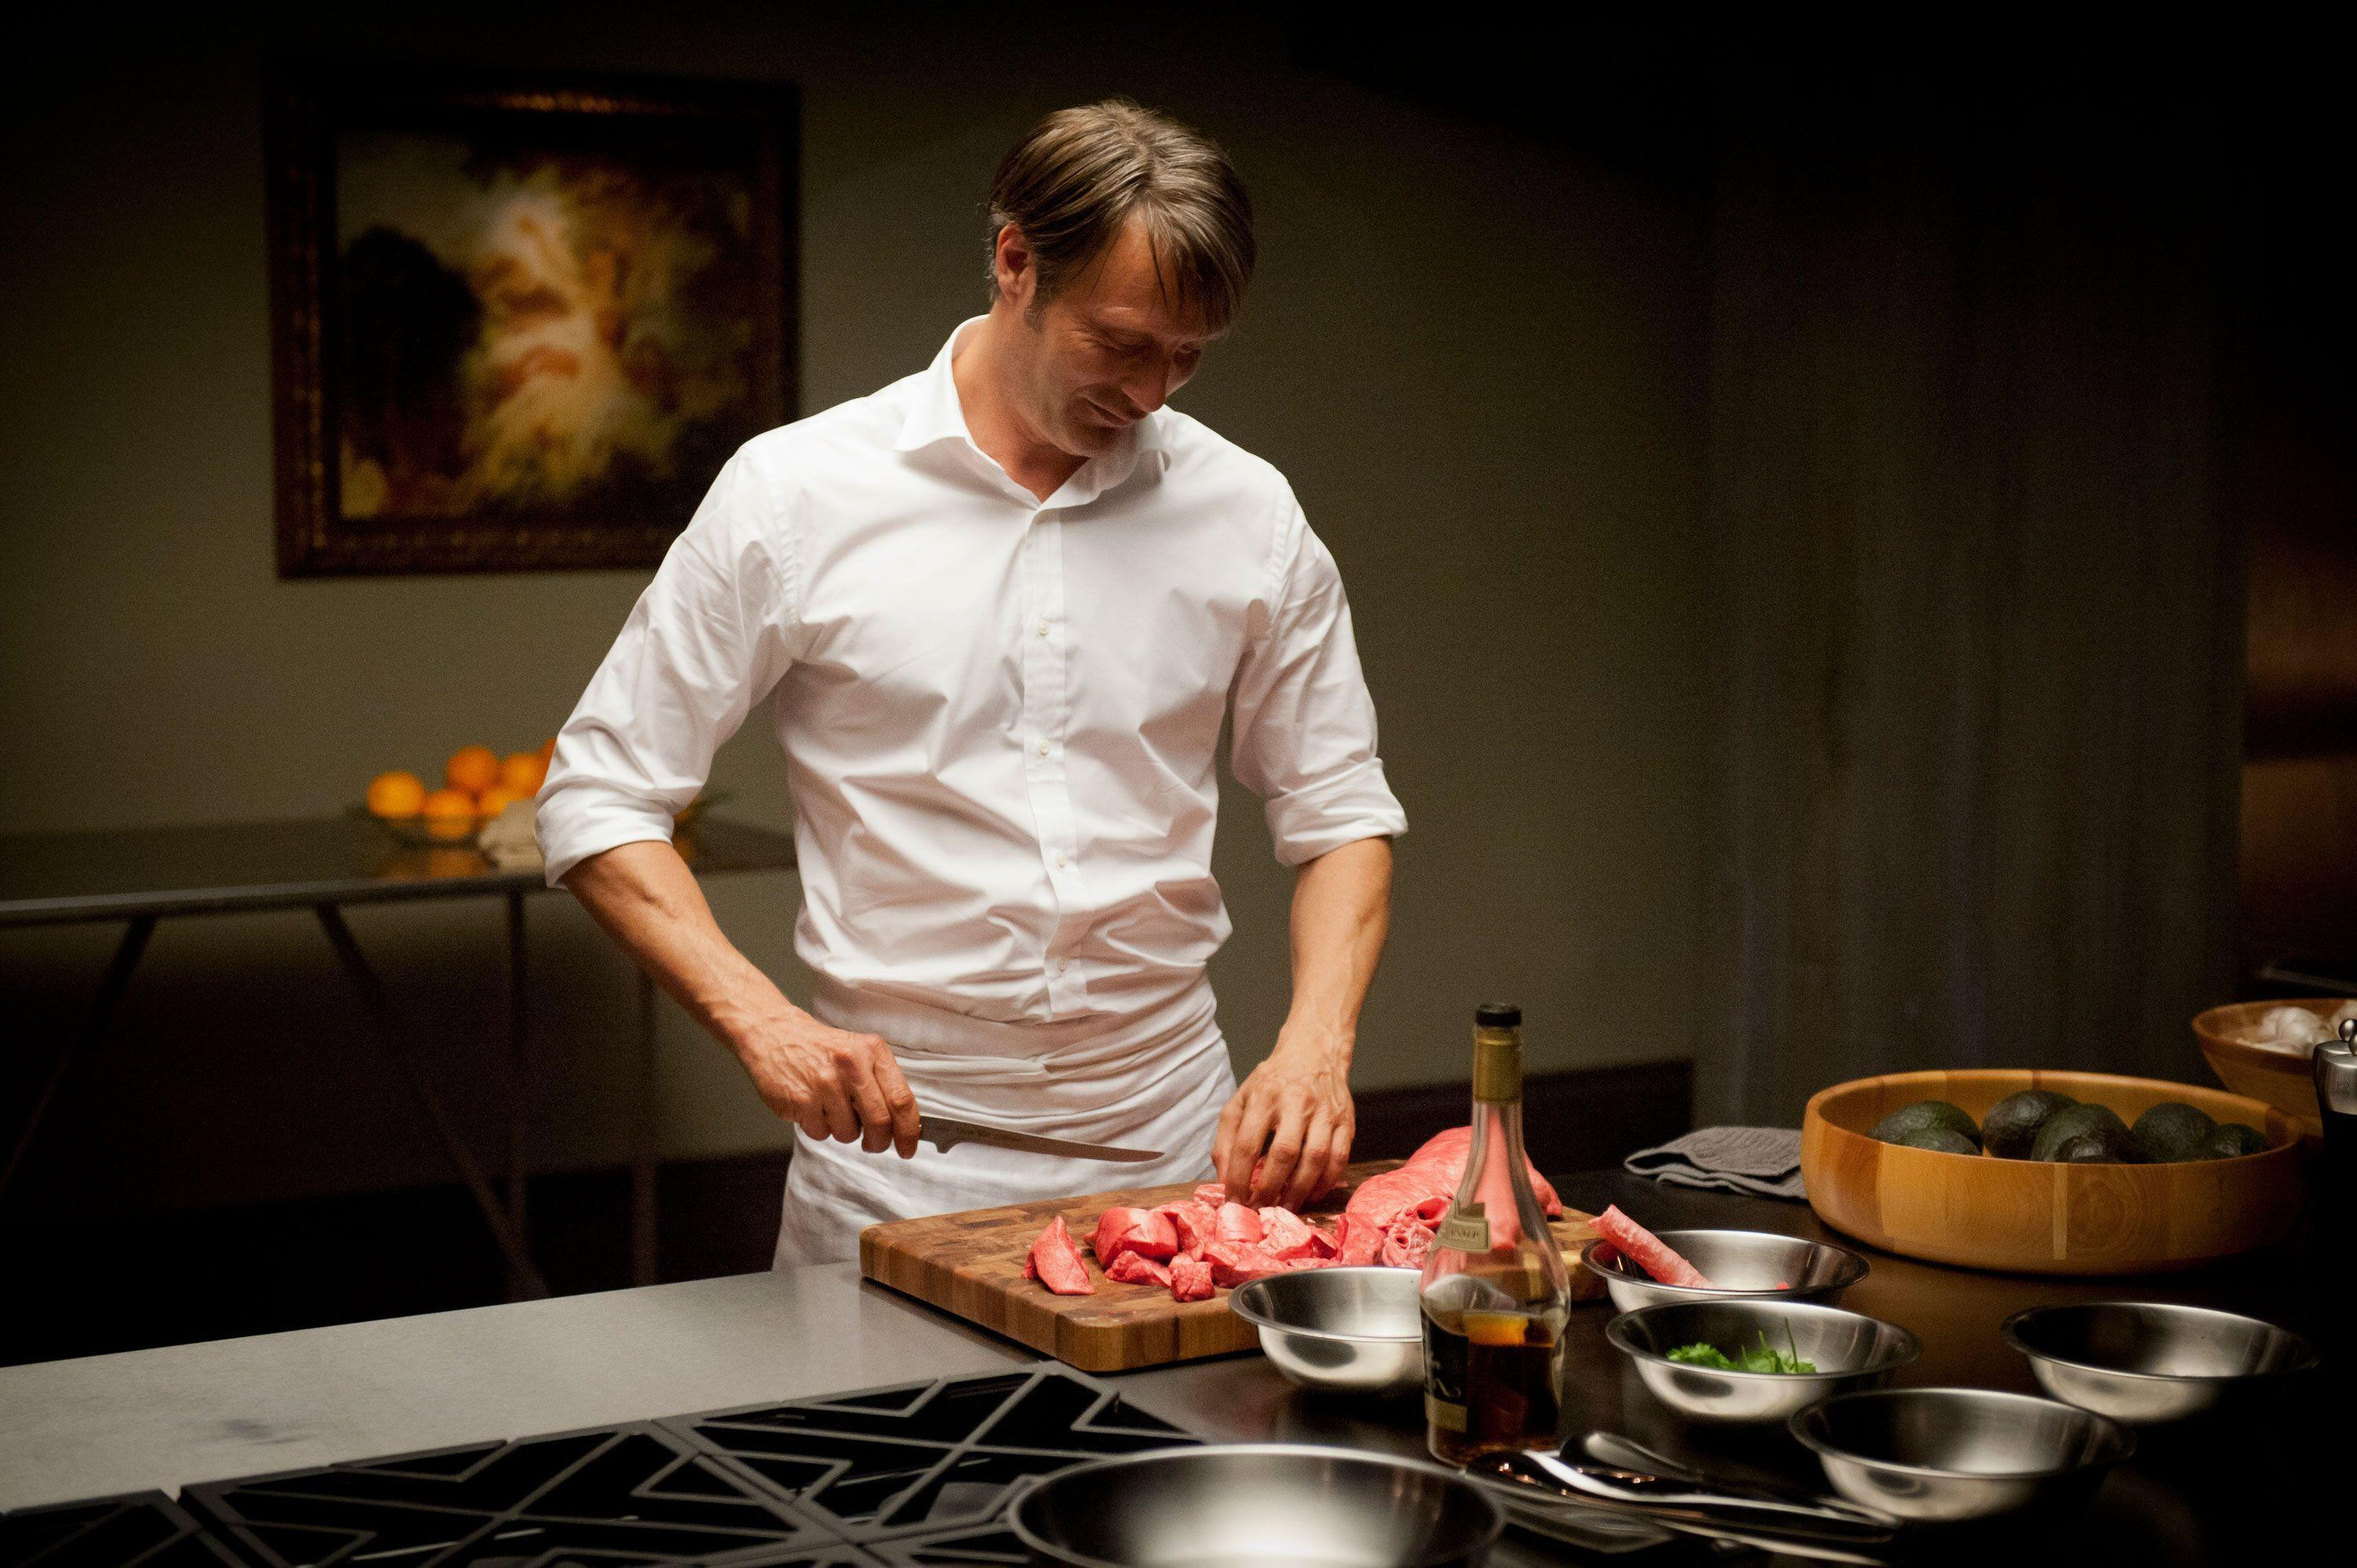 Hannibal is cooking